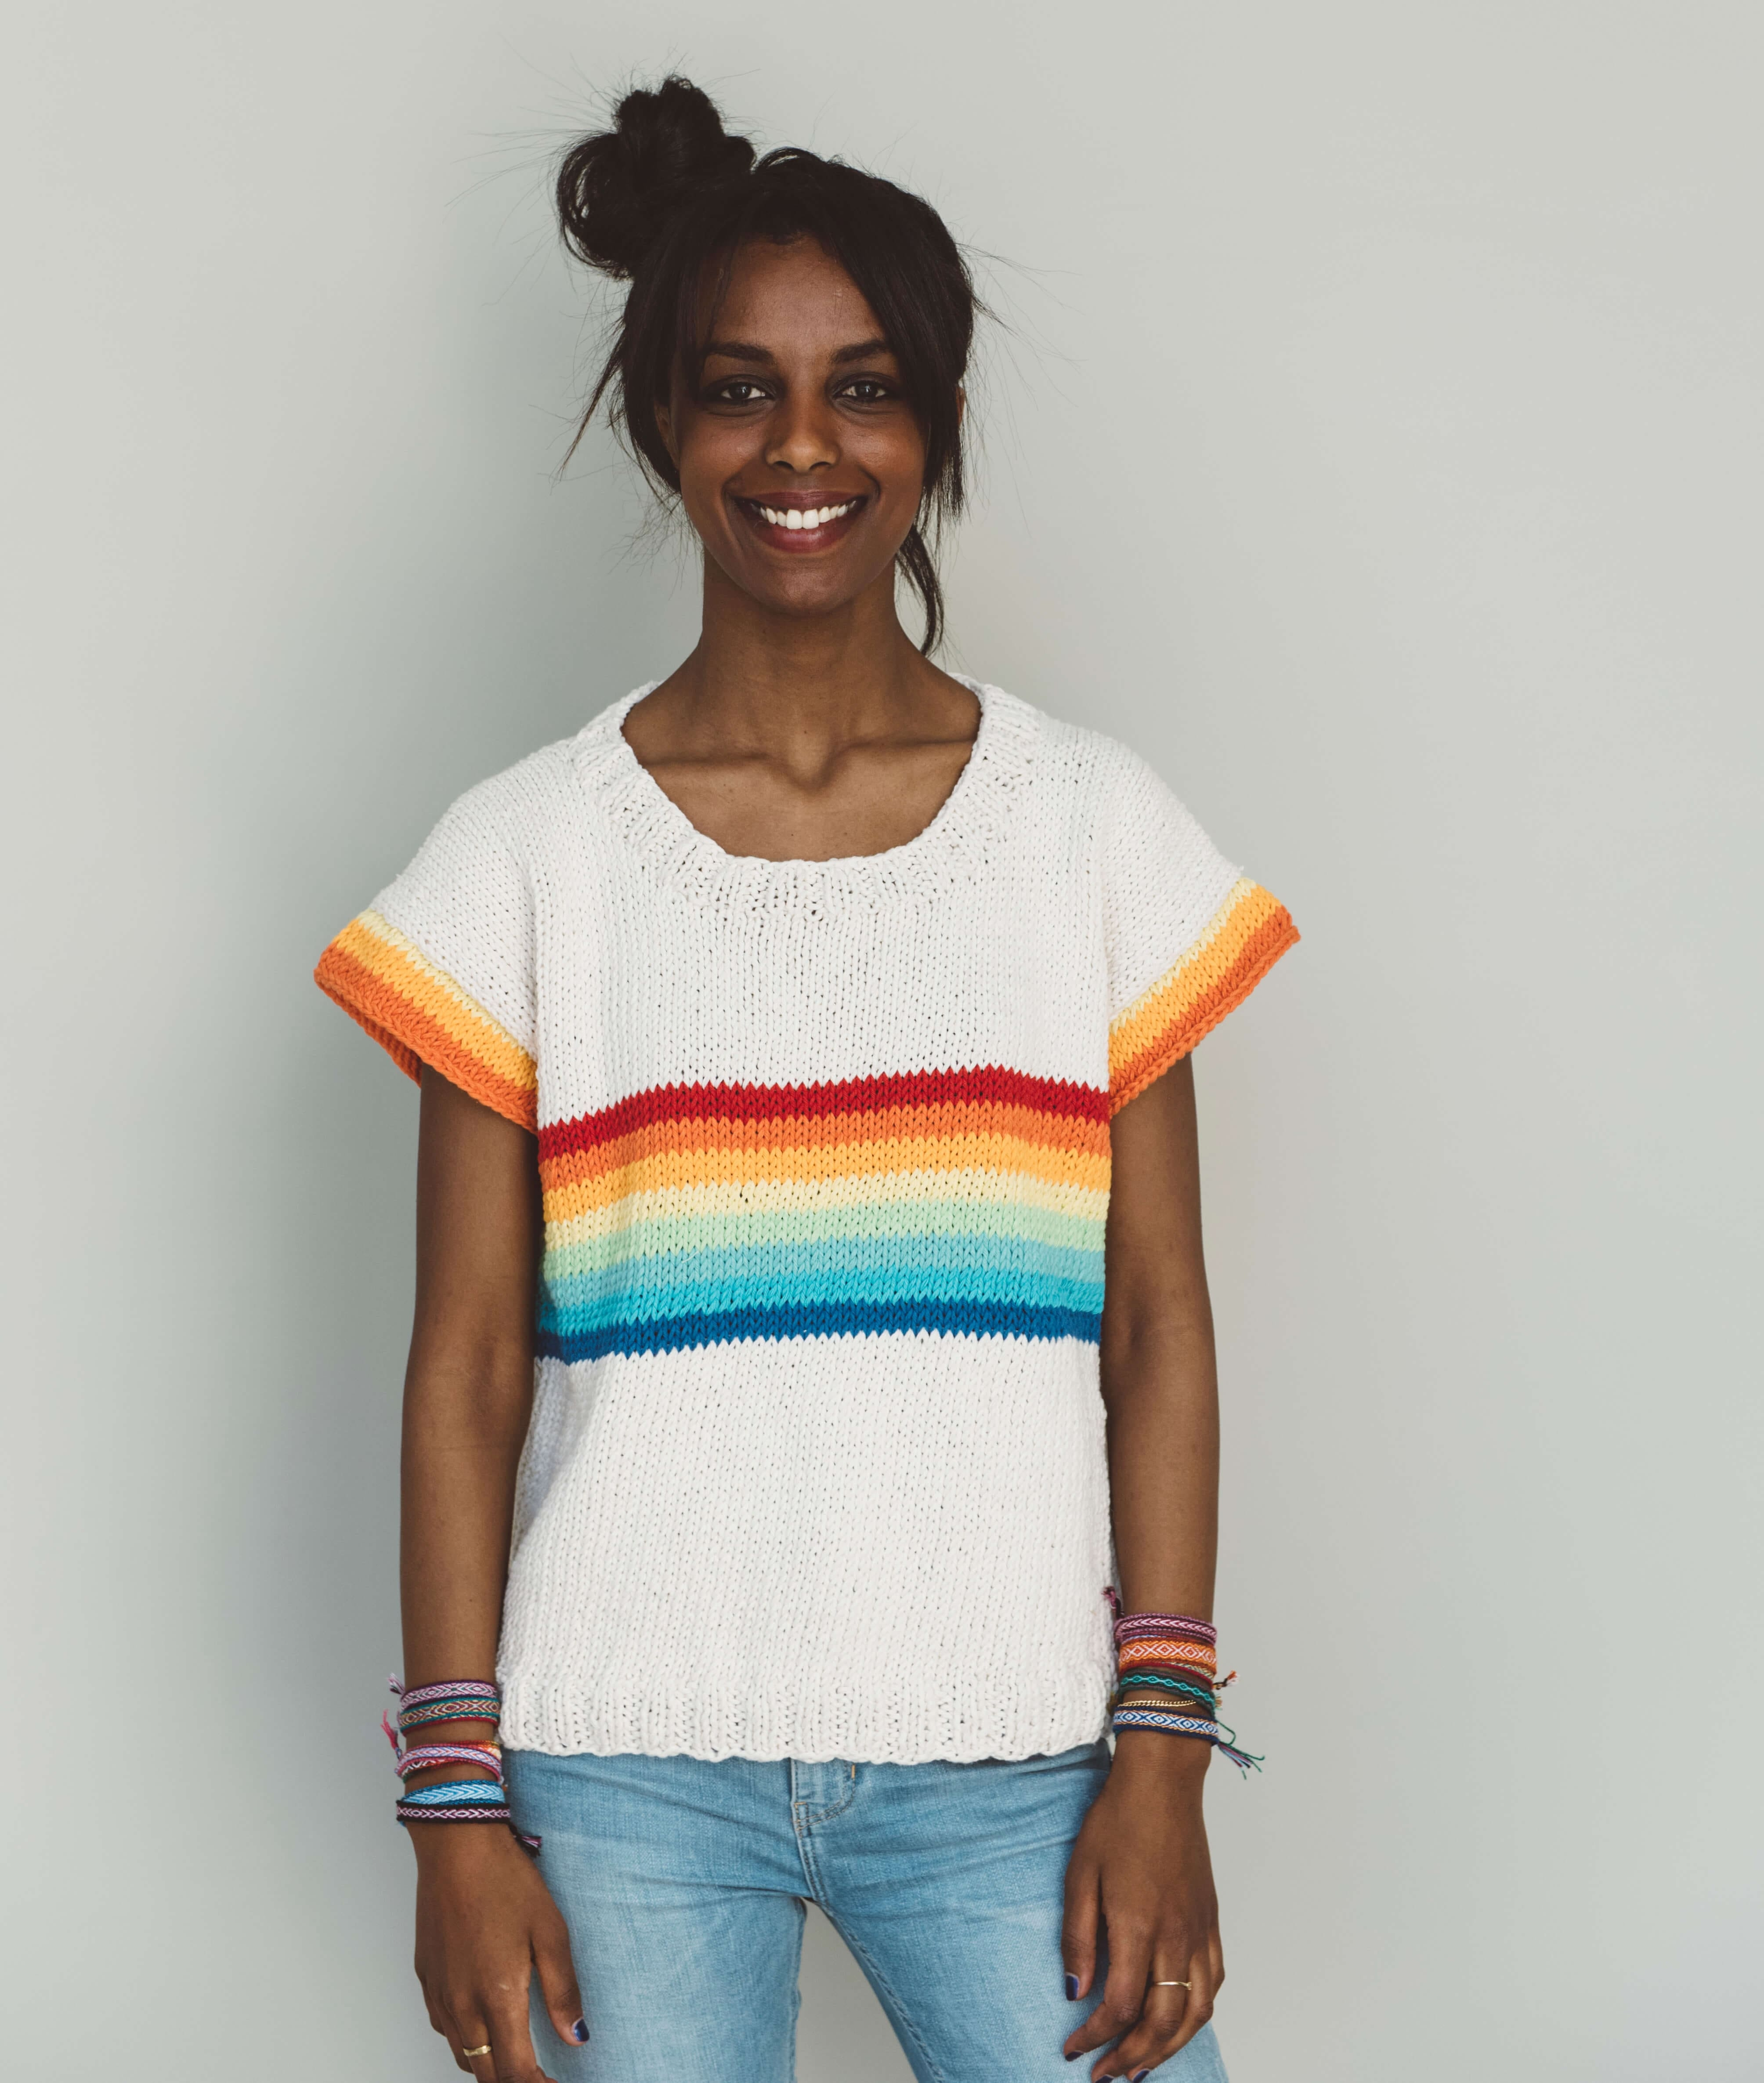 Sweaters and Tops - Cotton - RAINBOW TEE - 1